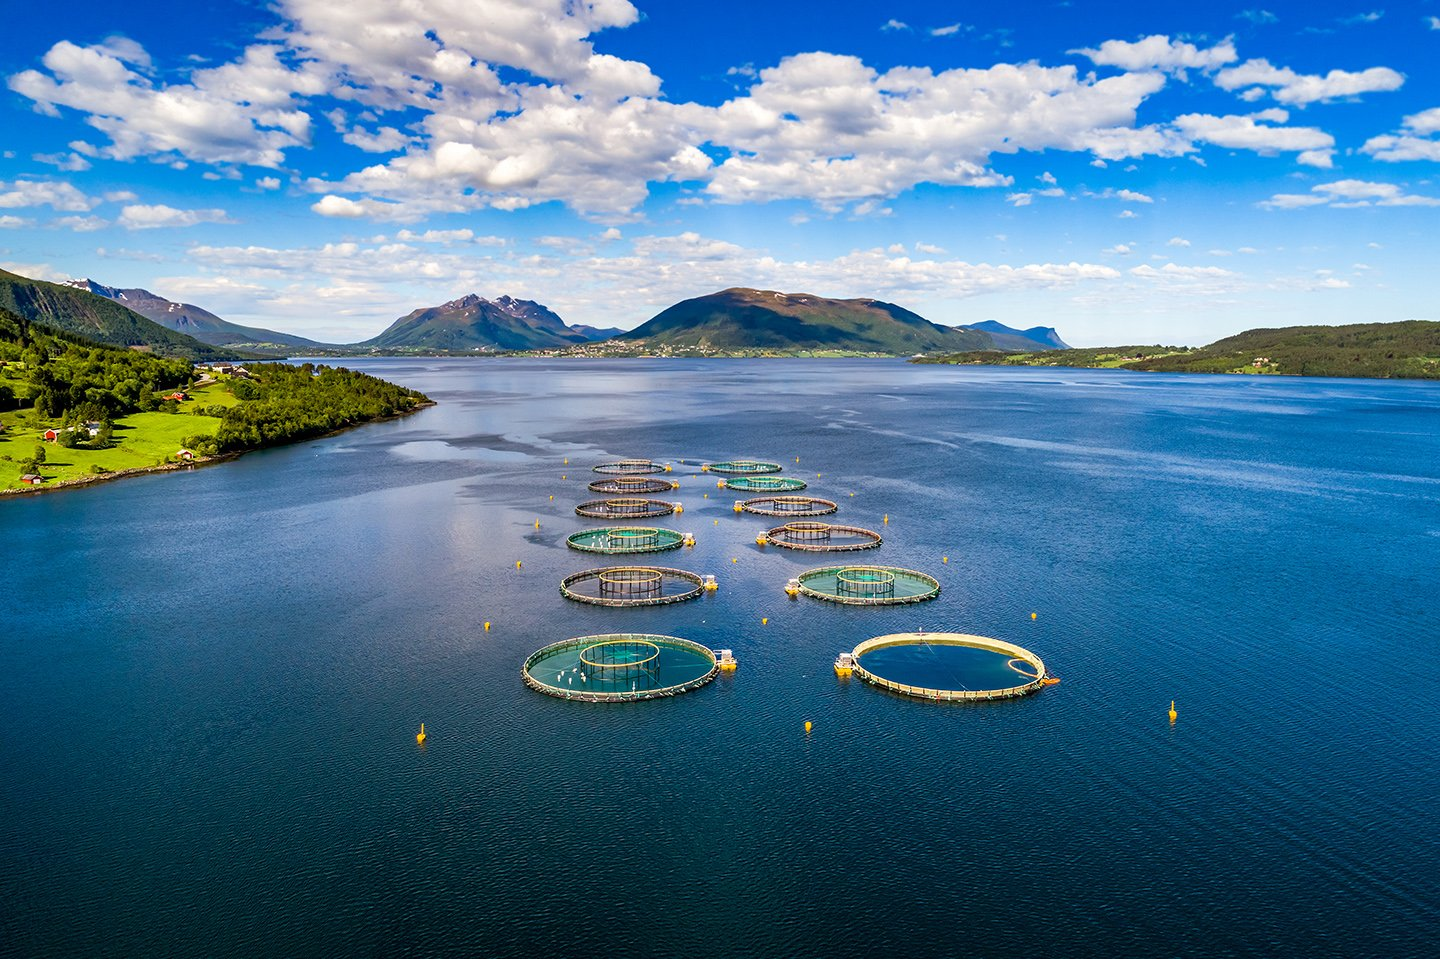 An aerial view of an open-water Salmon farm in Norway